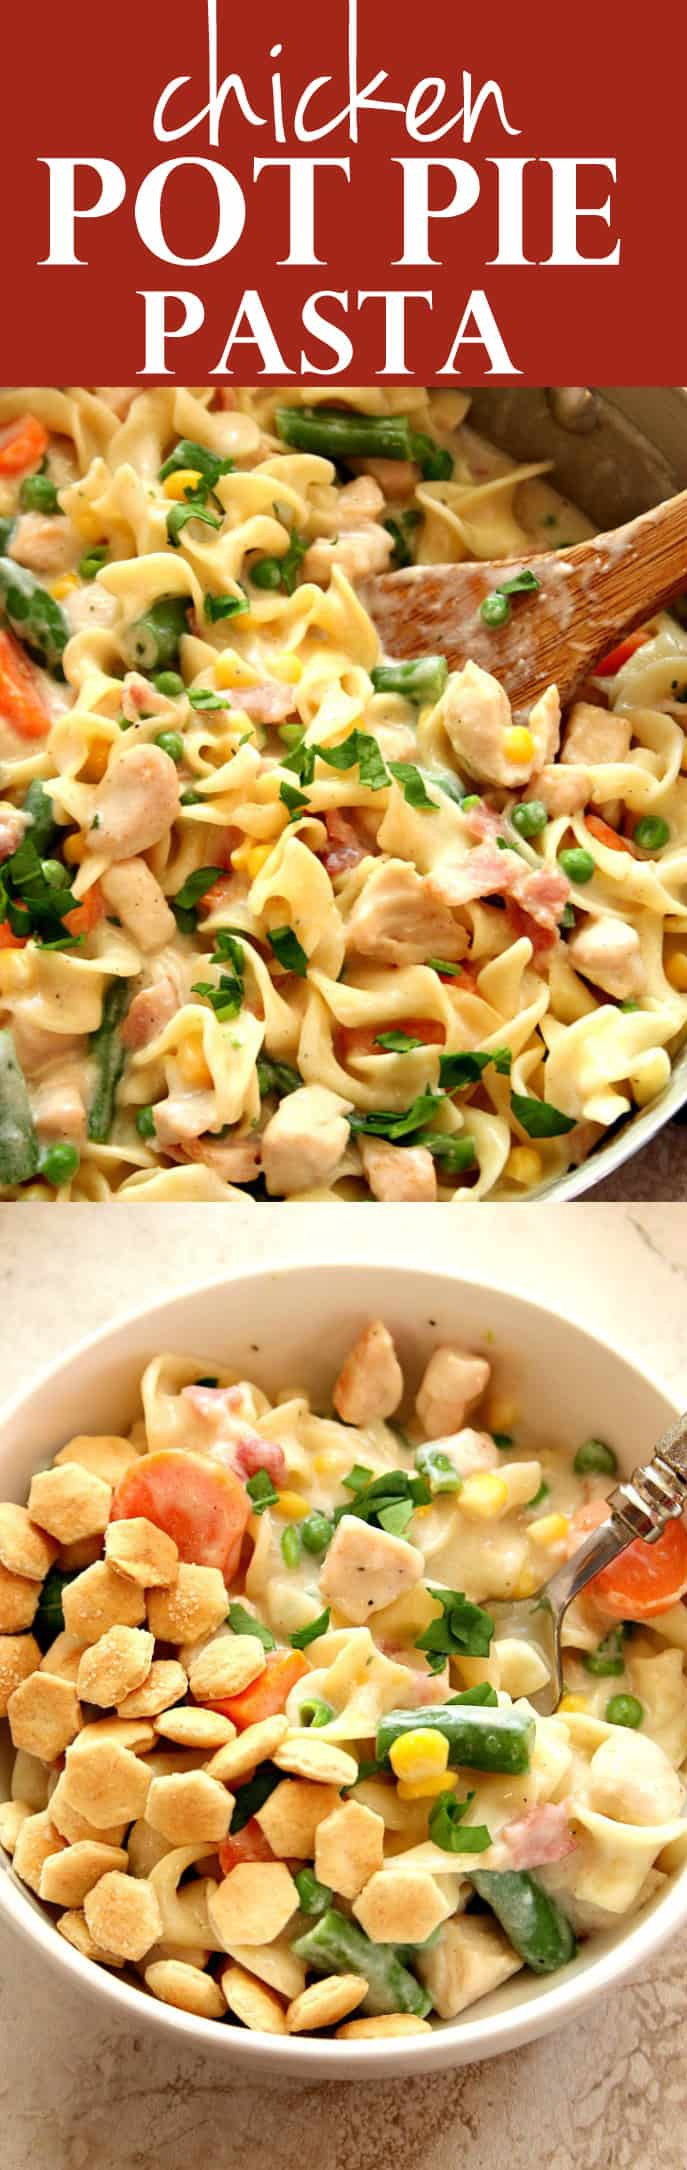 chicken pot pie skillet pasta long1 Chicken Pot Pie Skillet Pasta Recipe